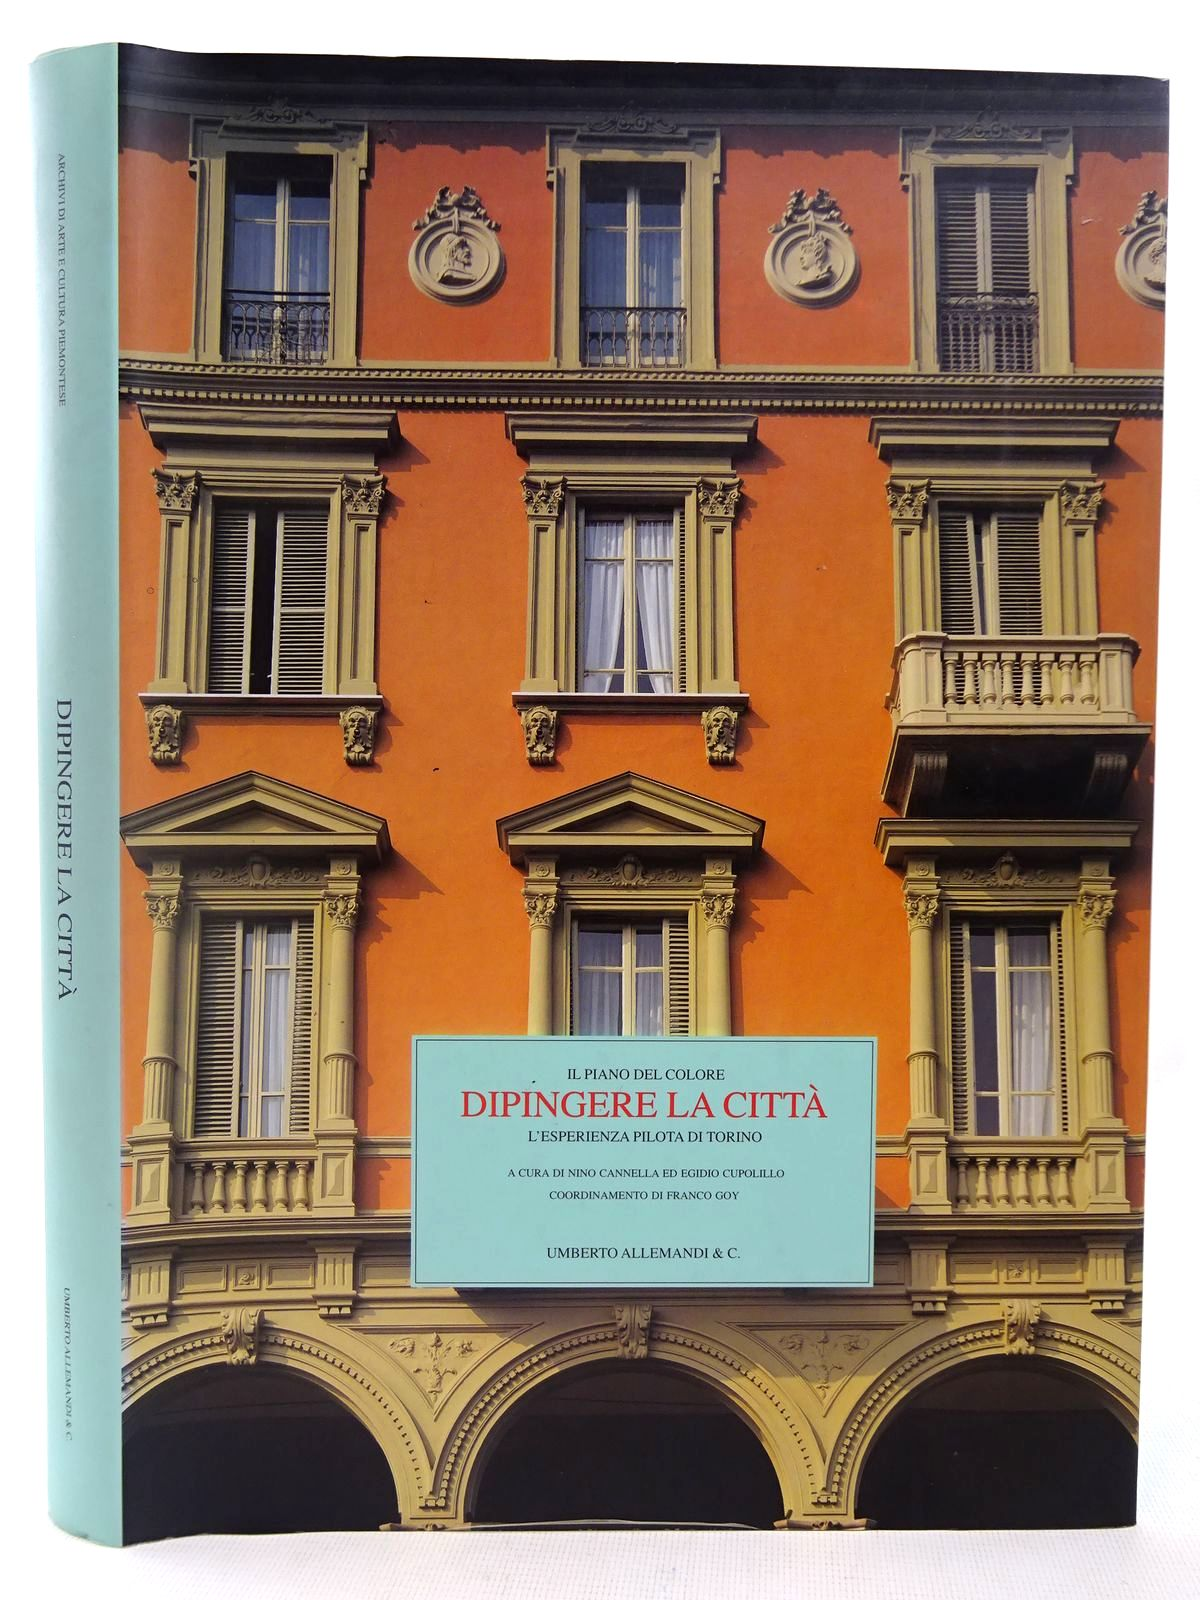 Photo of IL PIANO DEL COLORE DIPINGERE LA CITTA L'ESPERIENZA PILOTA DI TORNIO written by Cannella, Nino<br />Cxupolillo, Ed Egidio<br />Goy, Franco published by Umberto Allemandi & C. (STOCK CODE: 2127944)  for sale by Stella & Rose's Books